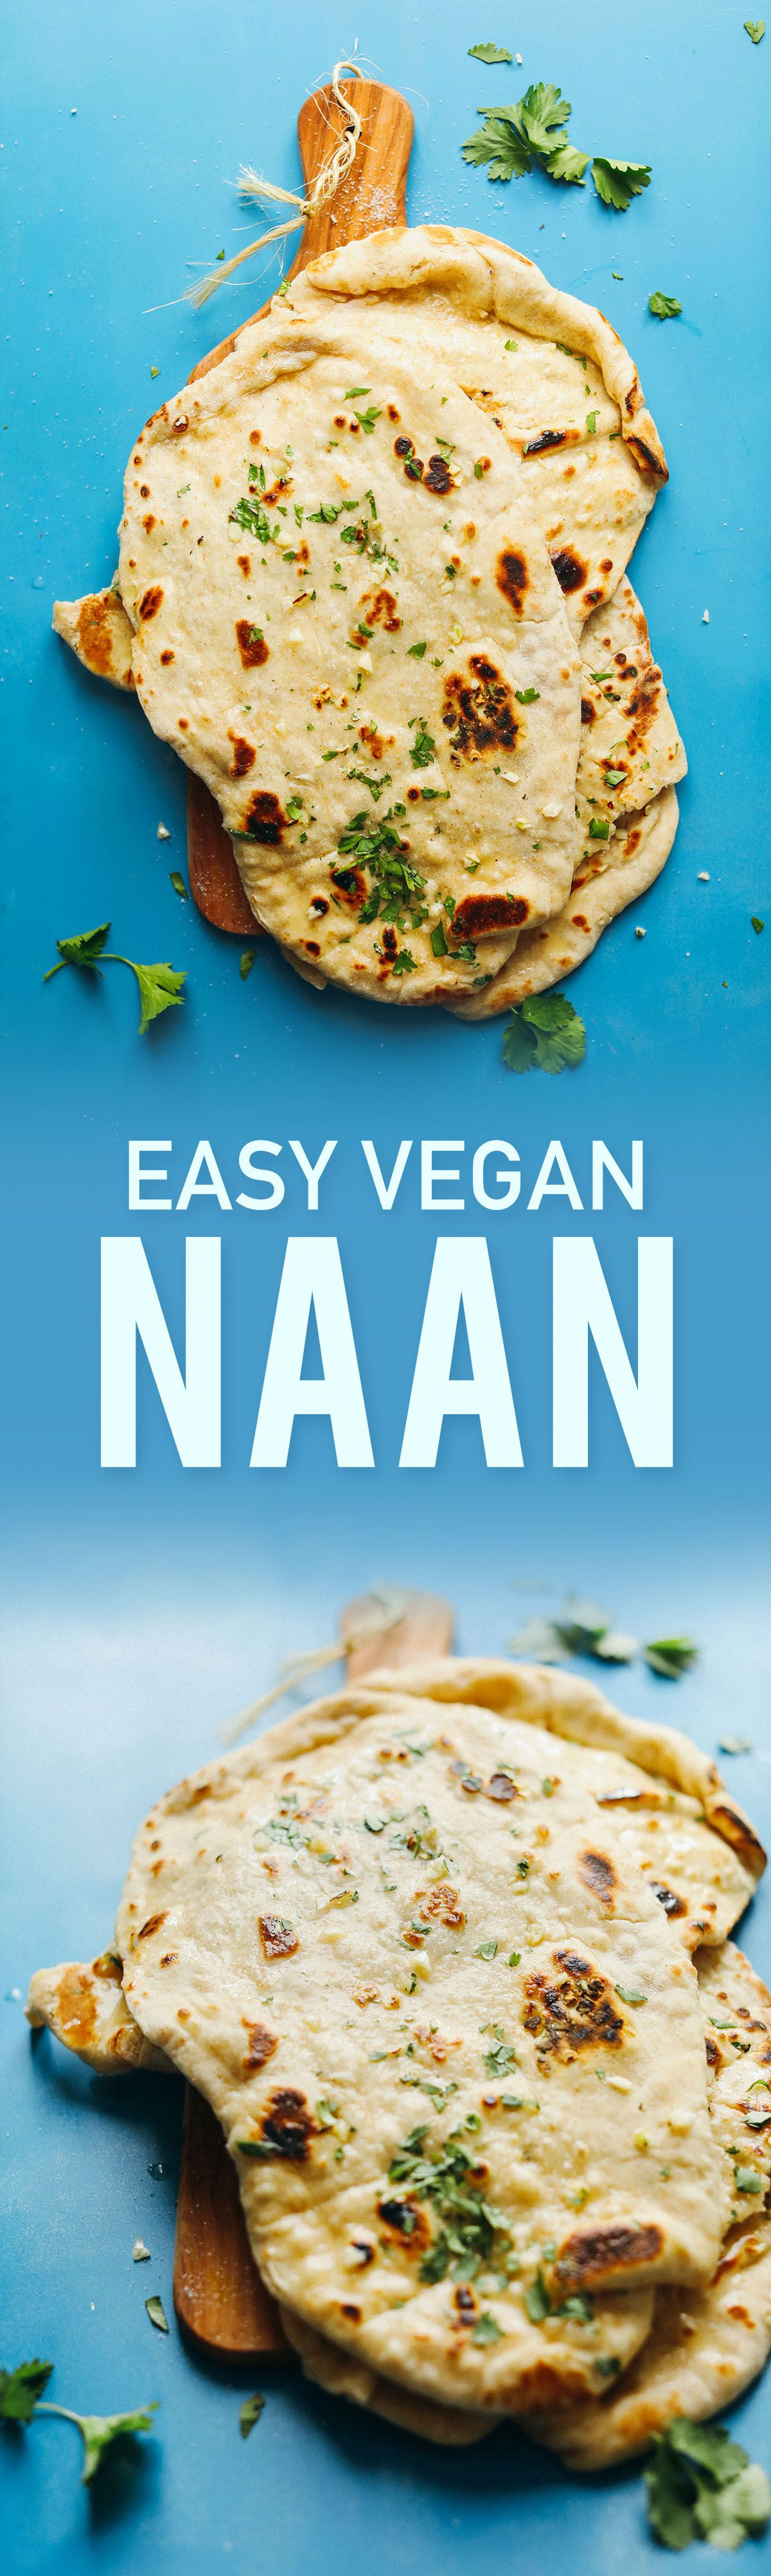 Easy Vegan Naan #homemadesweets